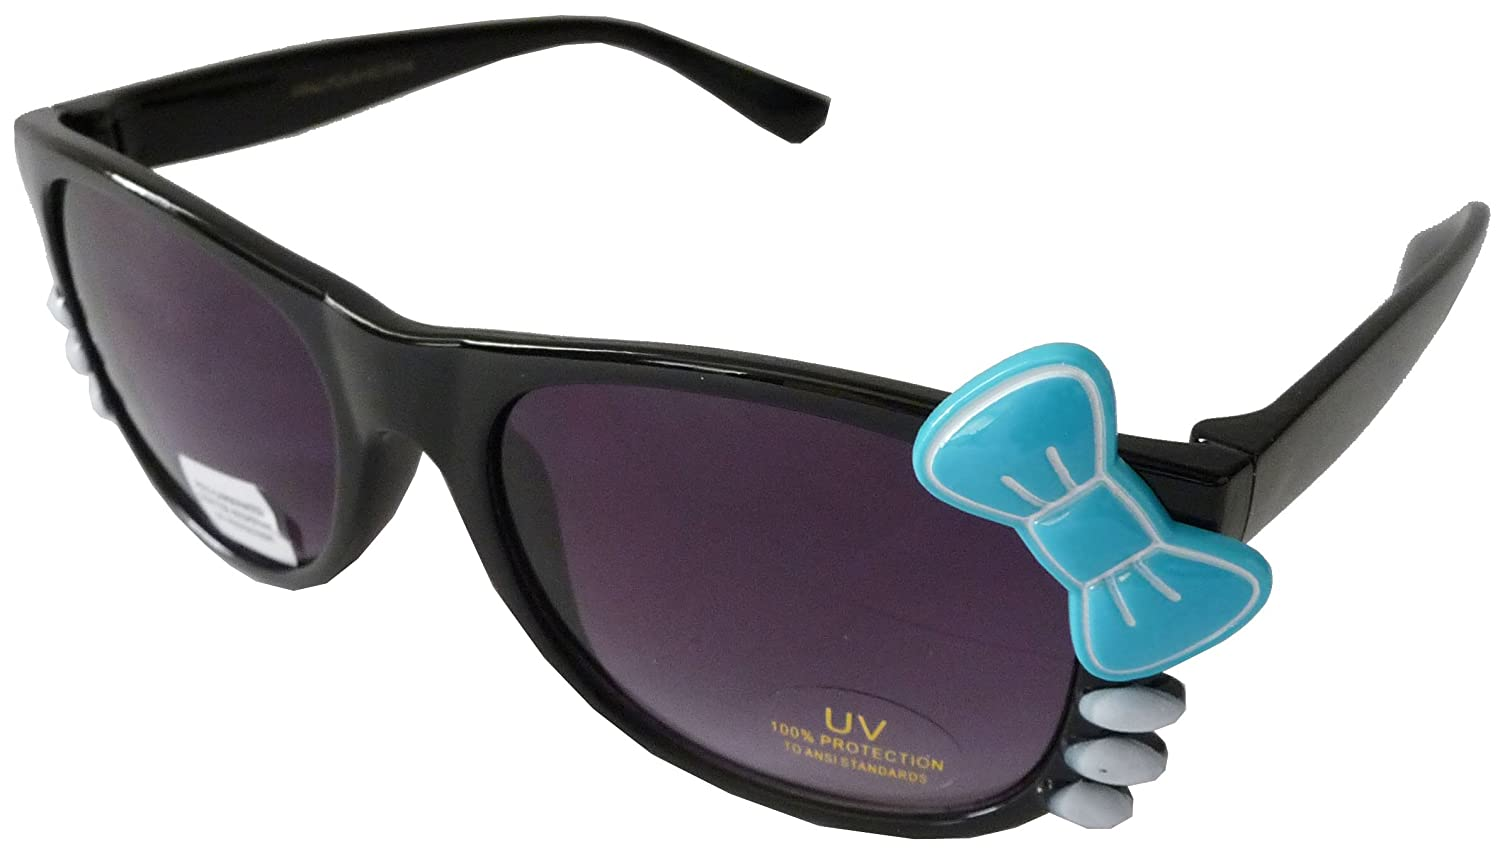 Sanrio Hello Kitty Style Inspired Wayfarer Sunglasses with Bow and Whiskers - Black Frame with Blue Bow